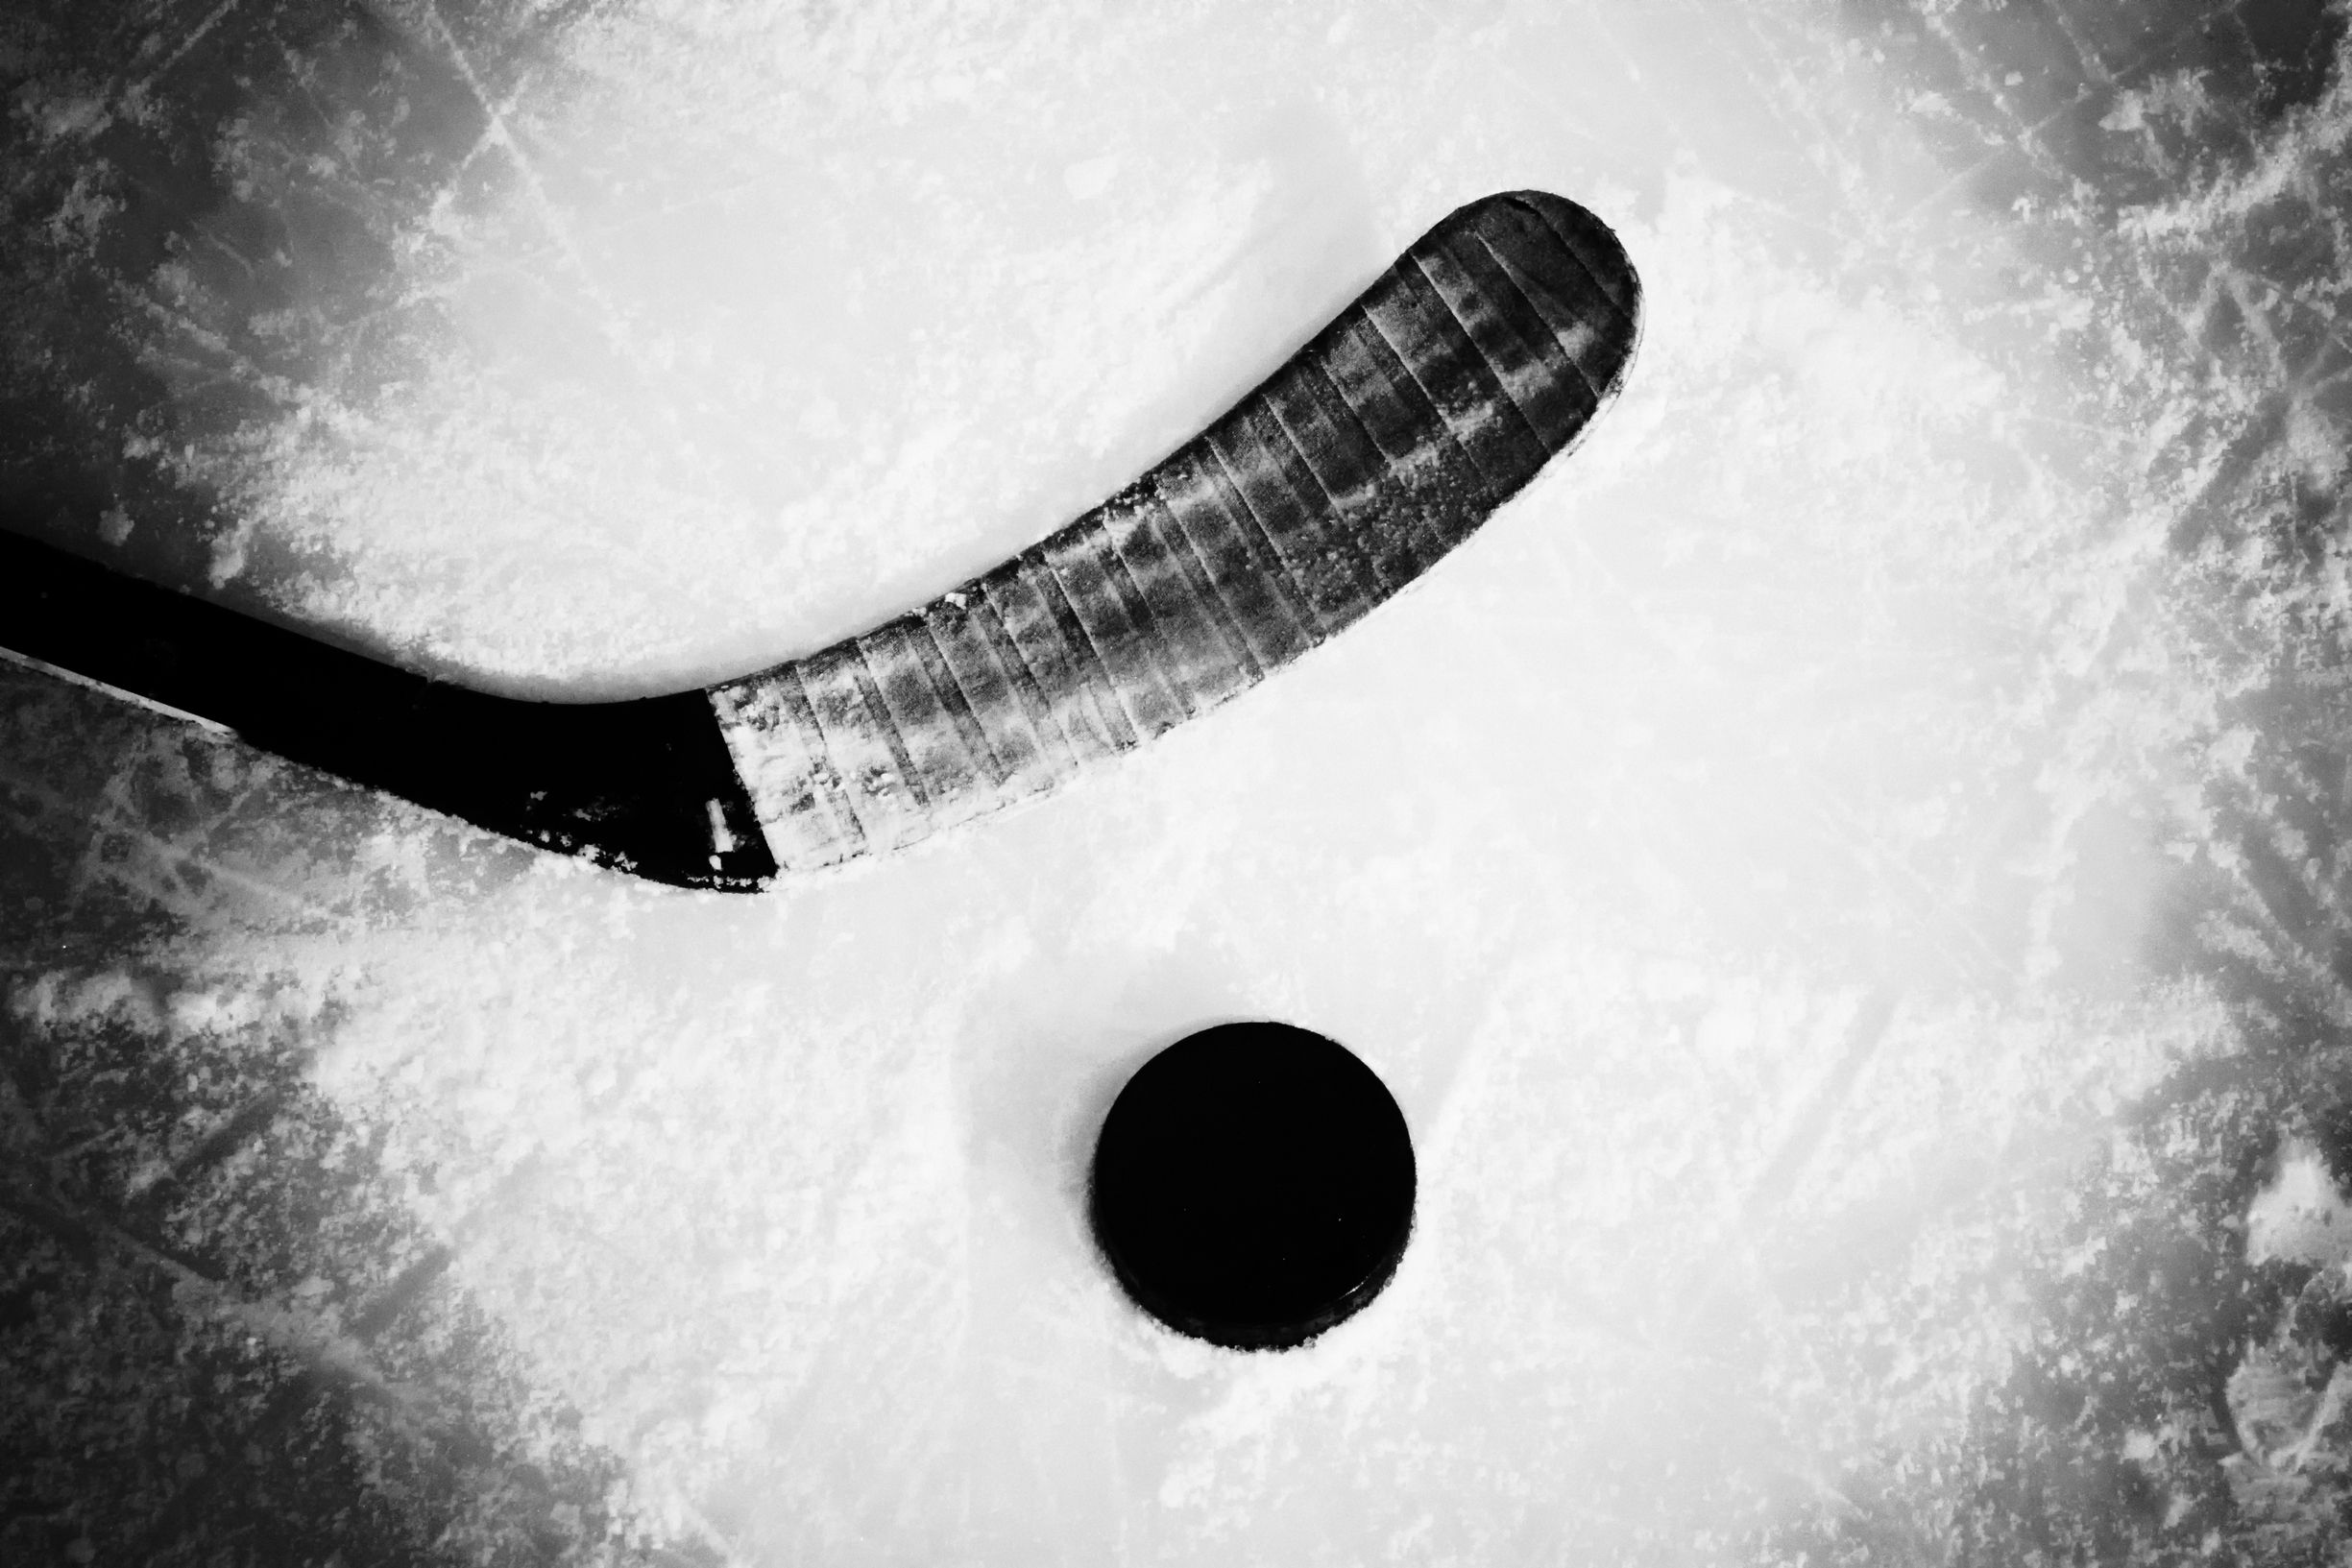 Ice Hockey Wallpapers Hd Backgrounds Images Pics Photos Free